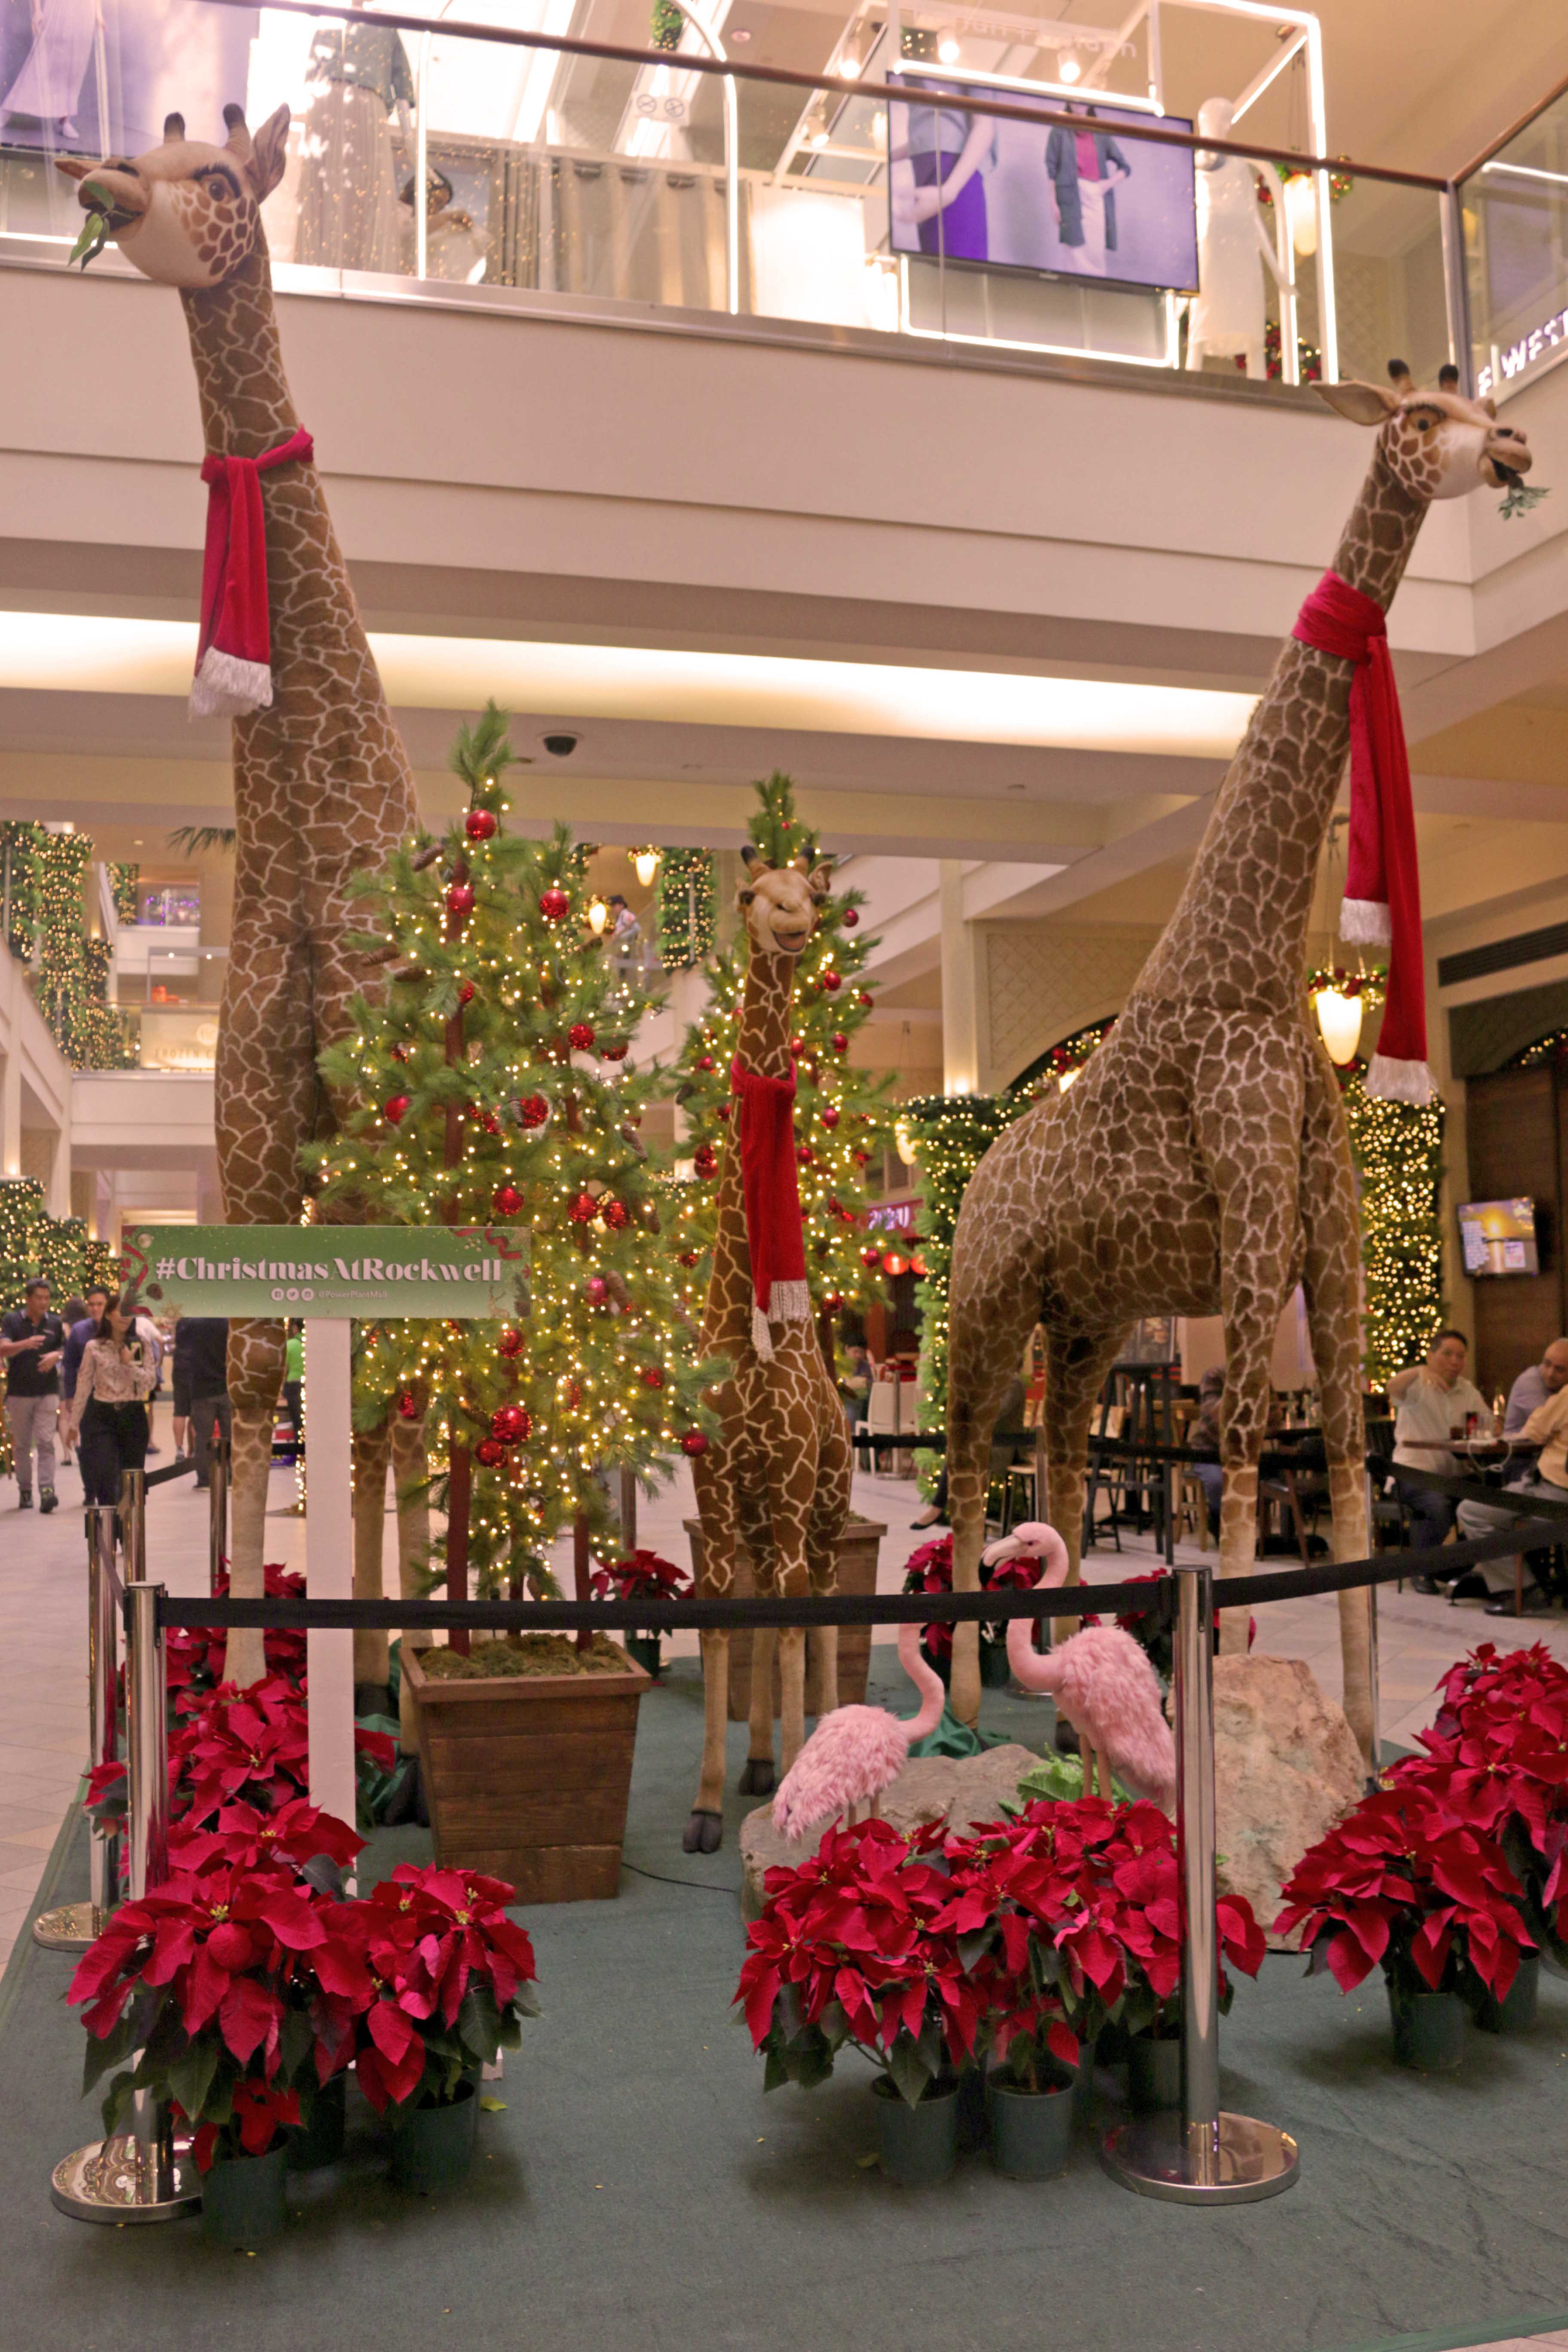 Giraffes tower over shoppers at the P1 Level